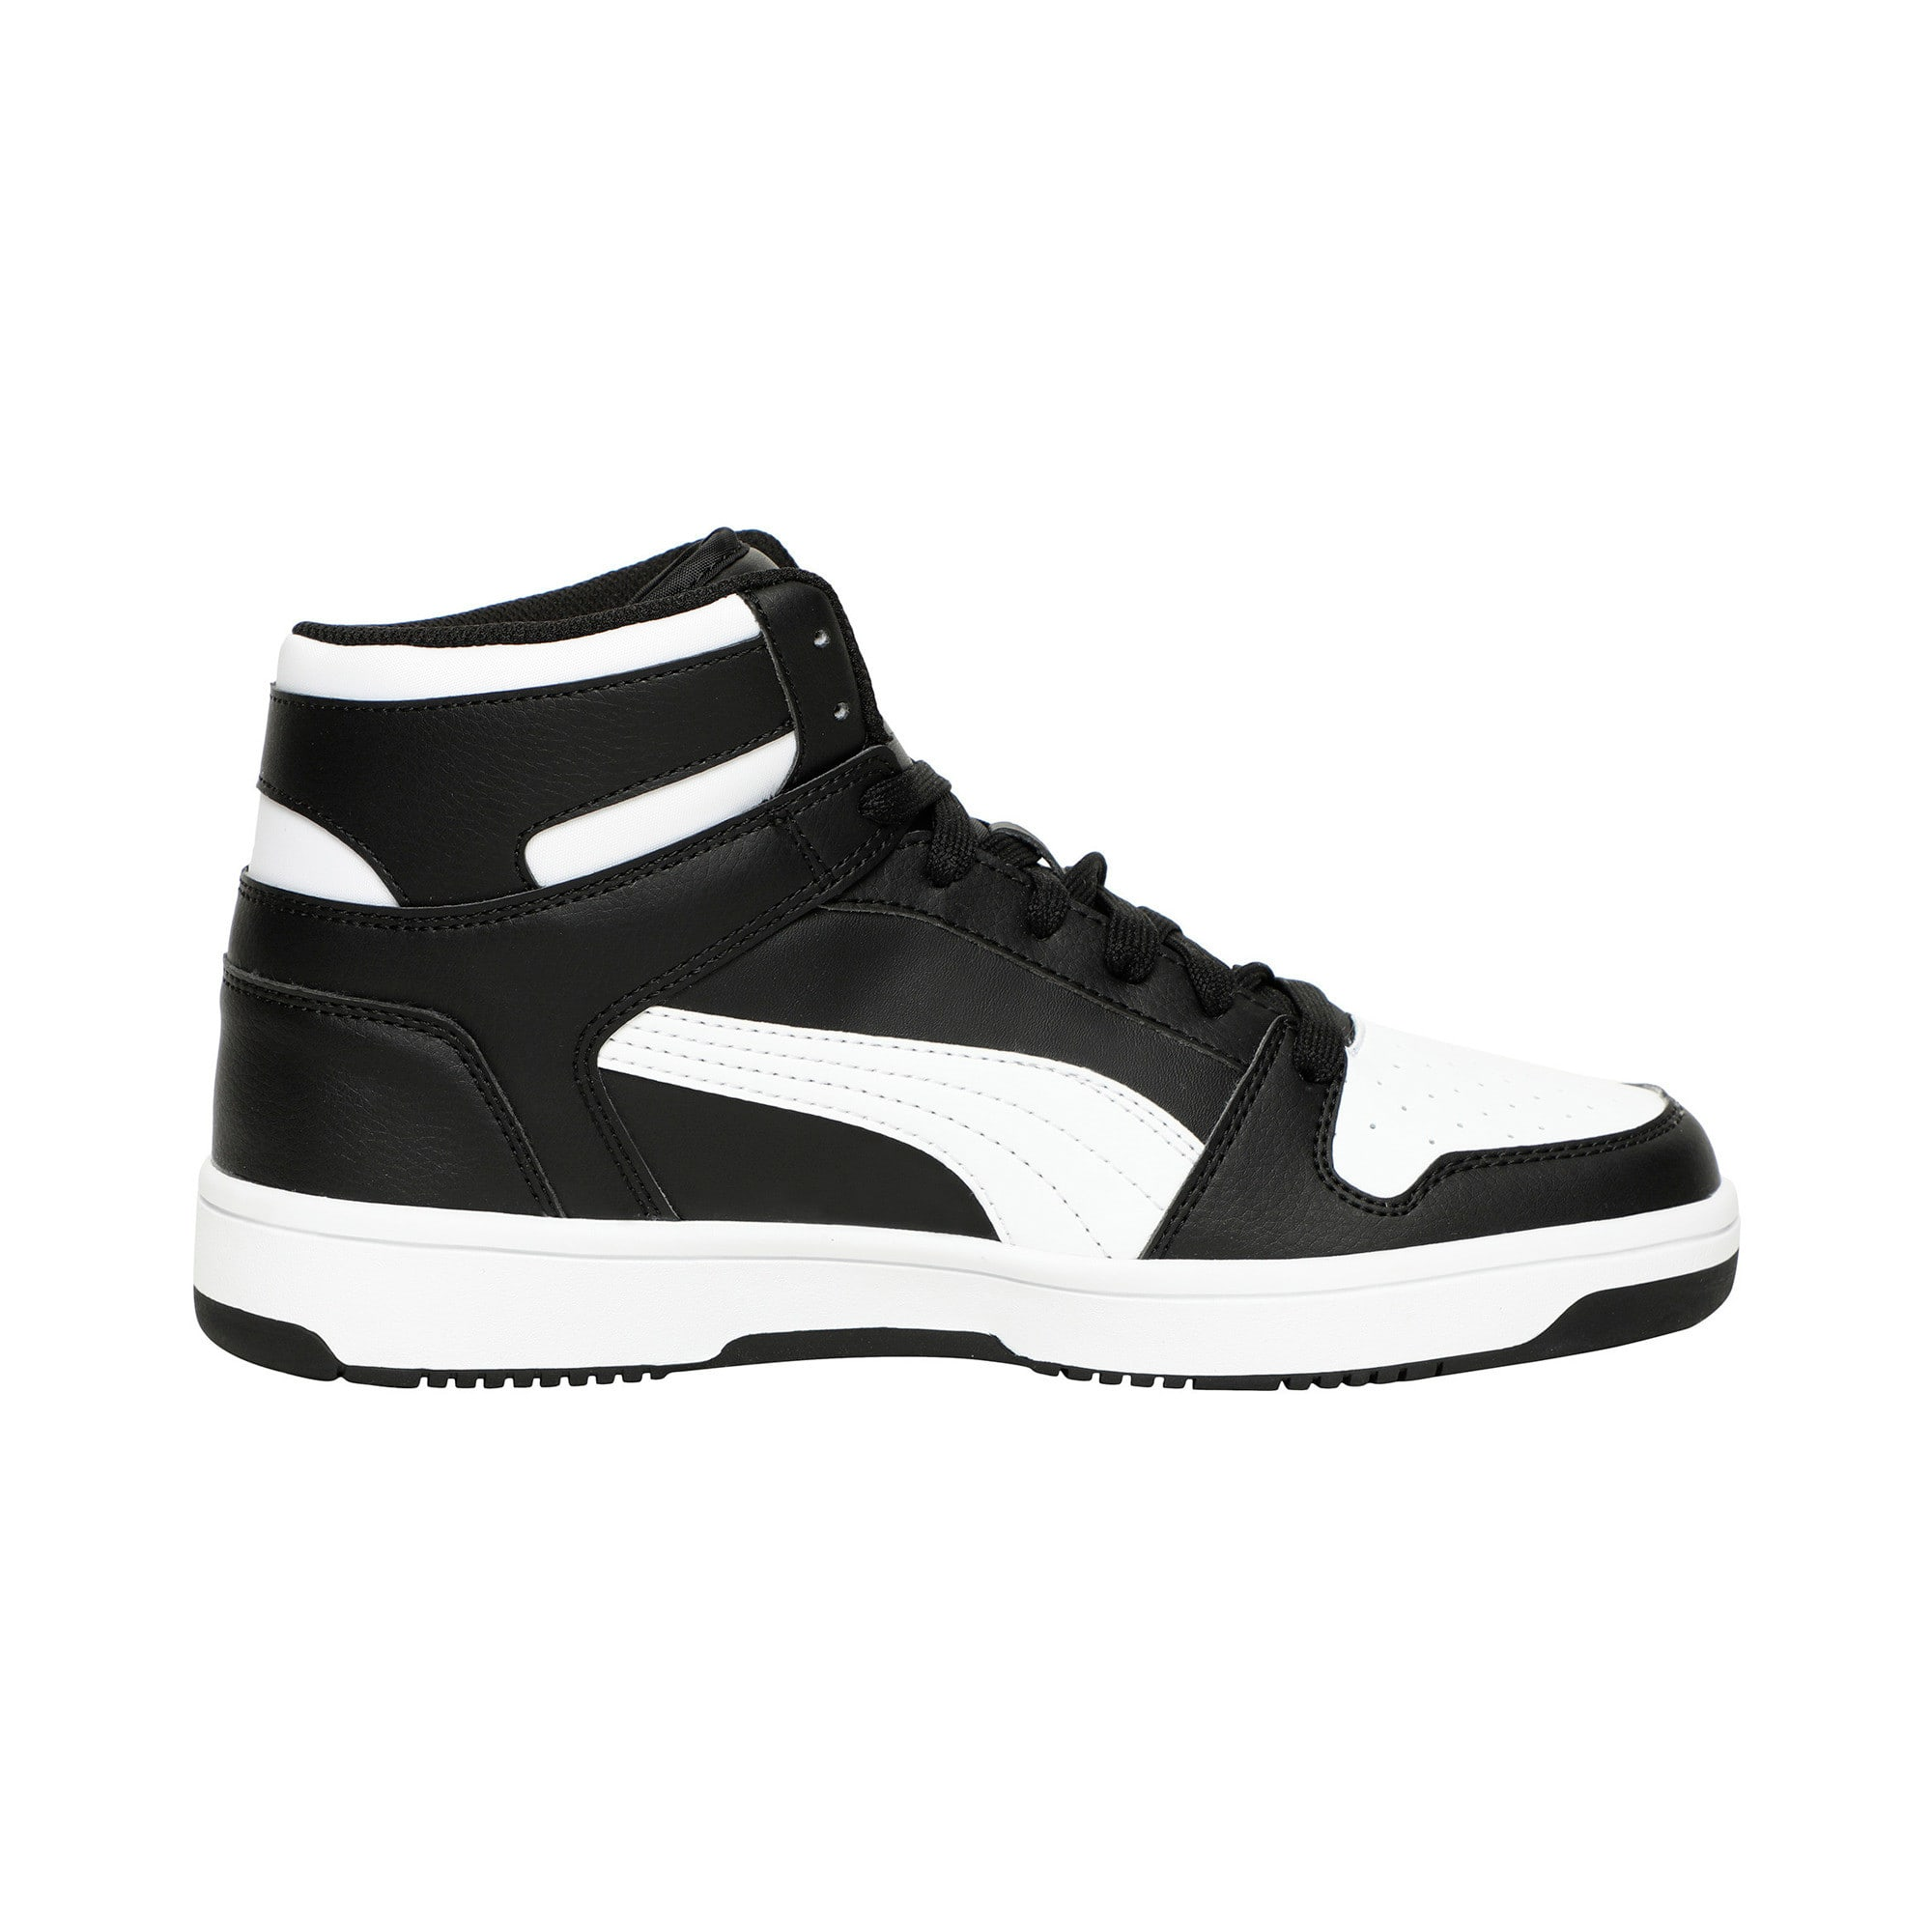 Thumbnail 5 of PUMA Rebound LayUp Sneakers, Puma Black-Puma White, medium